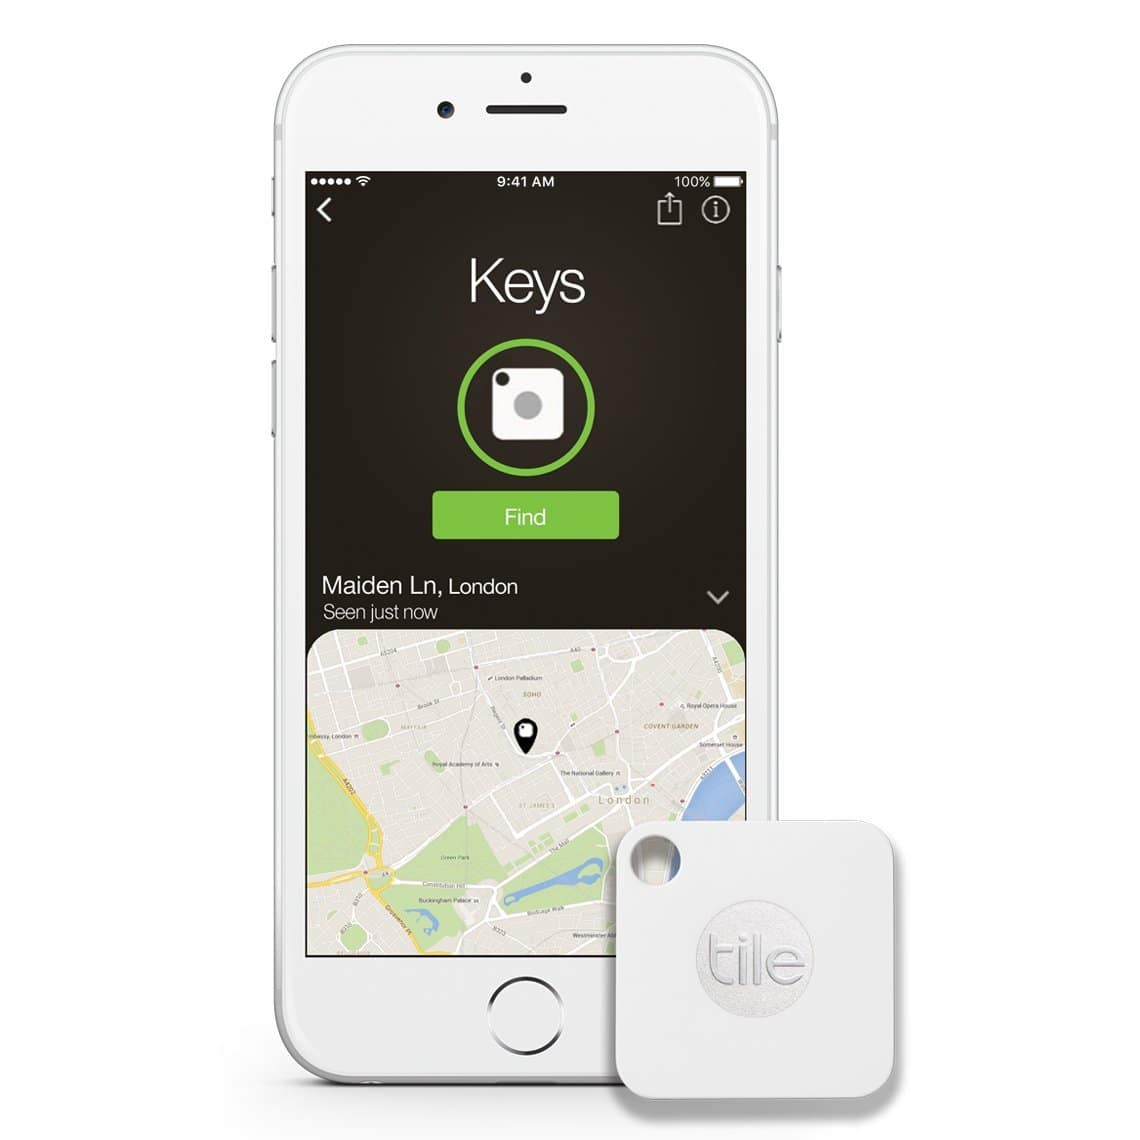 Tile Mate - Key Finder. Phone Finder. Anything Finder - 4 Pack $19